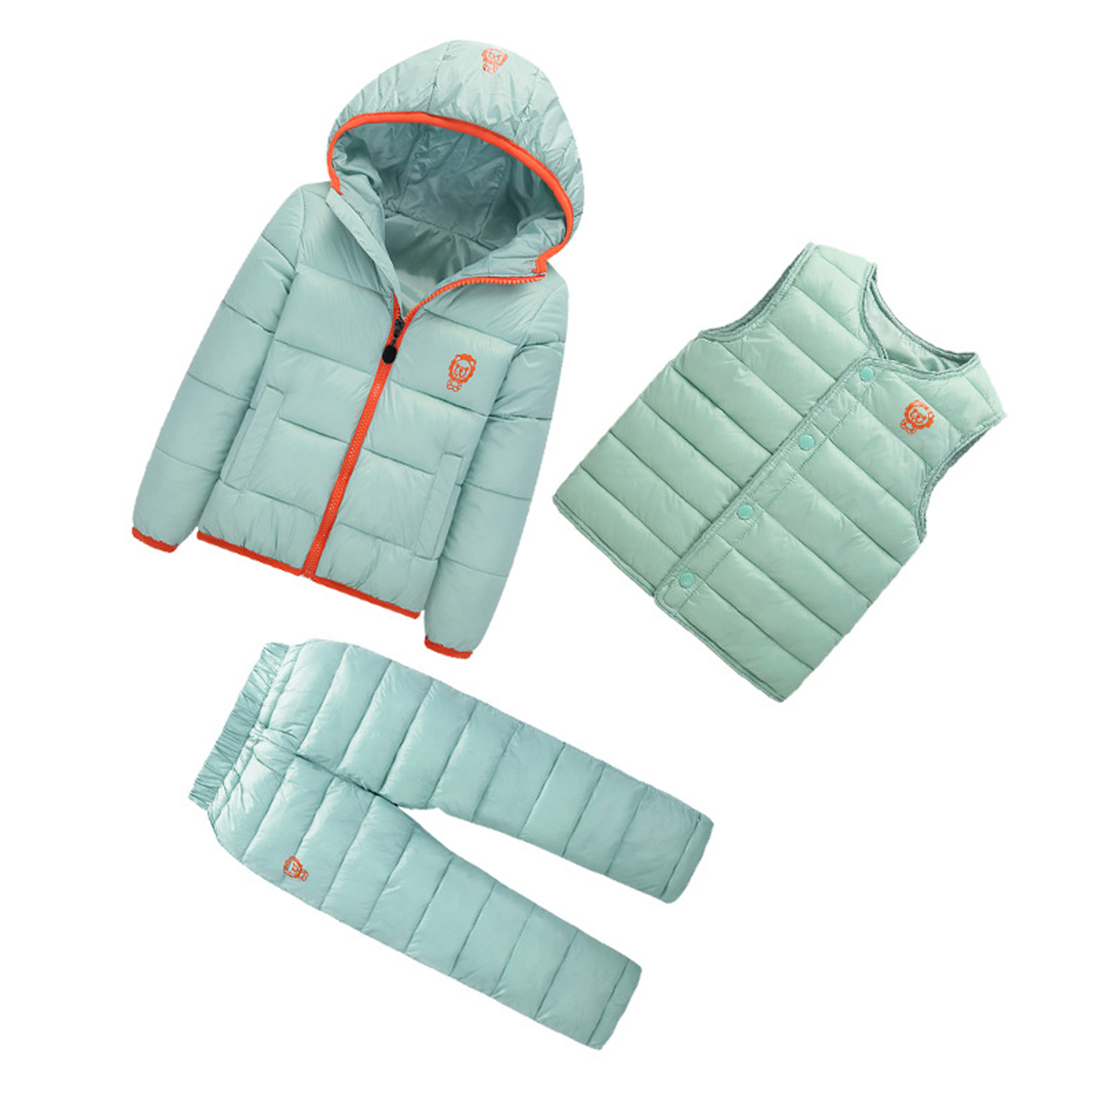 3-Pcs-Lot-Winter-Baby-Girls-Boys-Clothes-Sets-Children-Down-Cotton-padded-Coat-6-Colors-6-Size-4